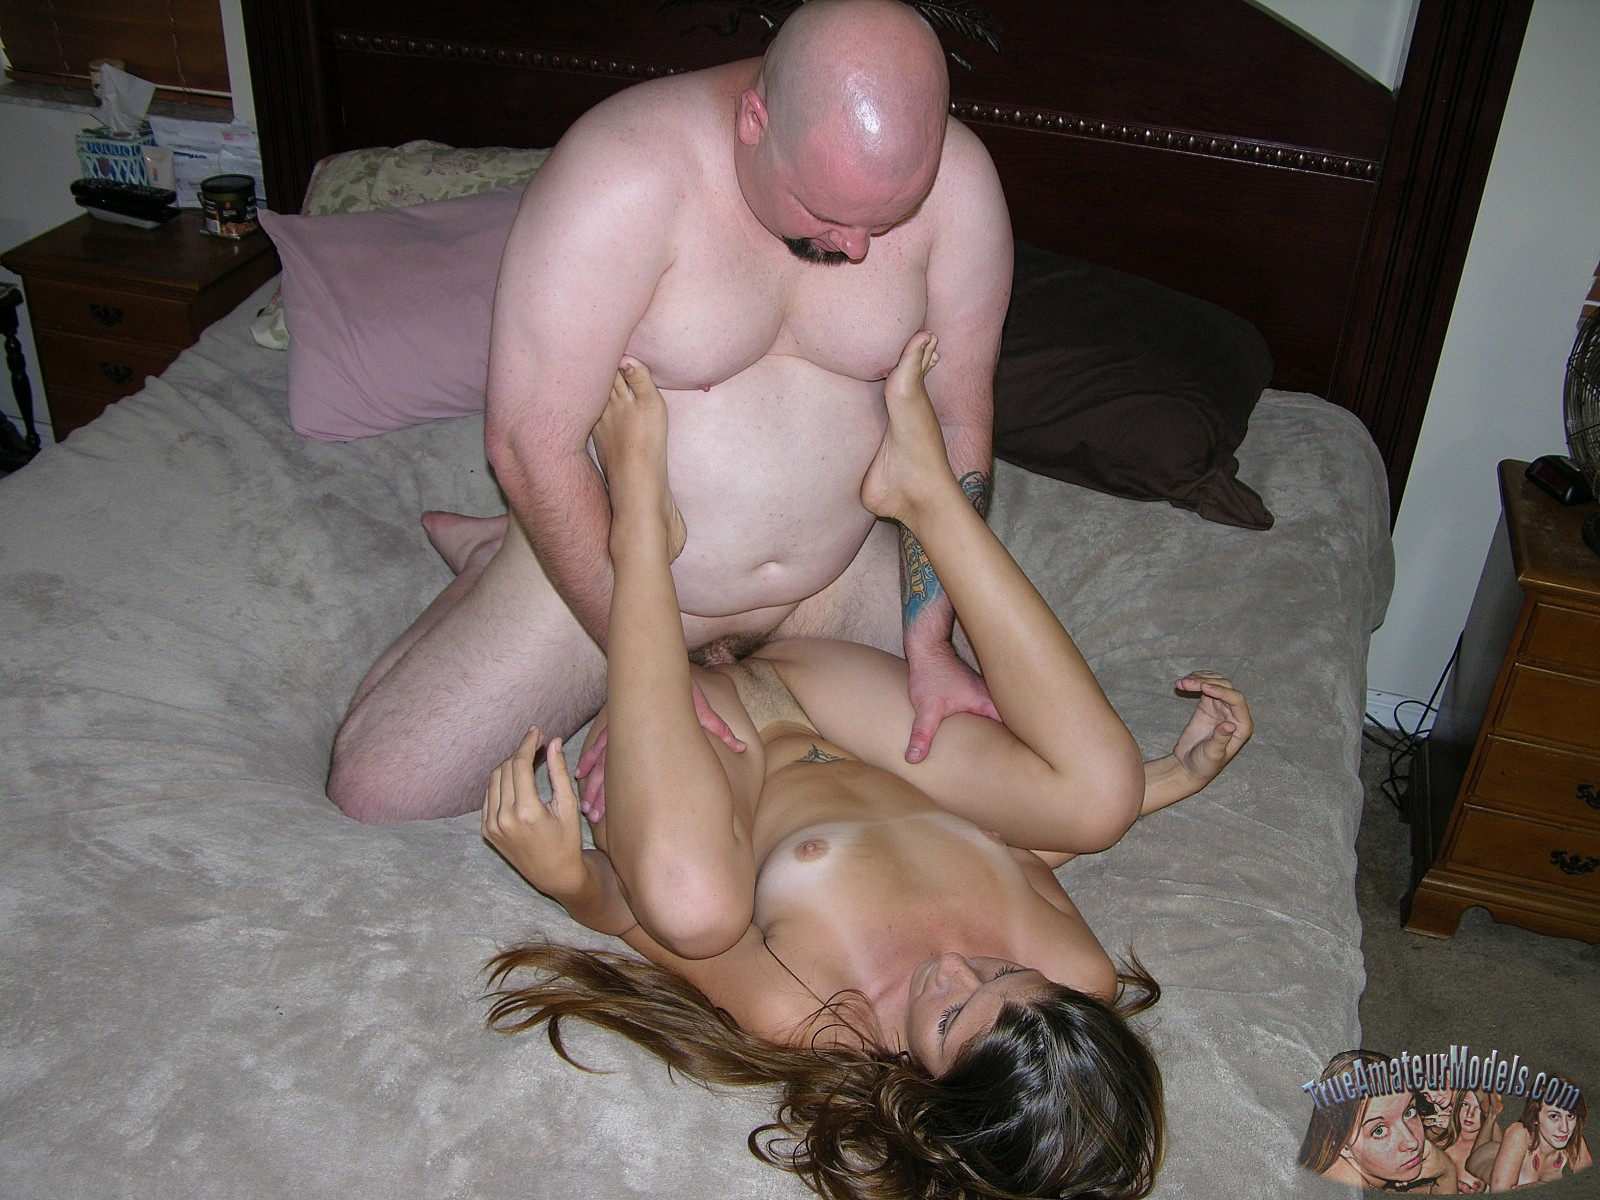 Amateurs whipped asshole bdsm free movies